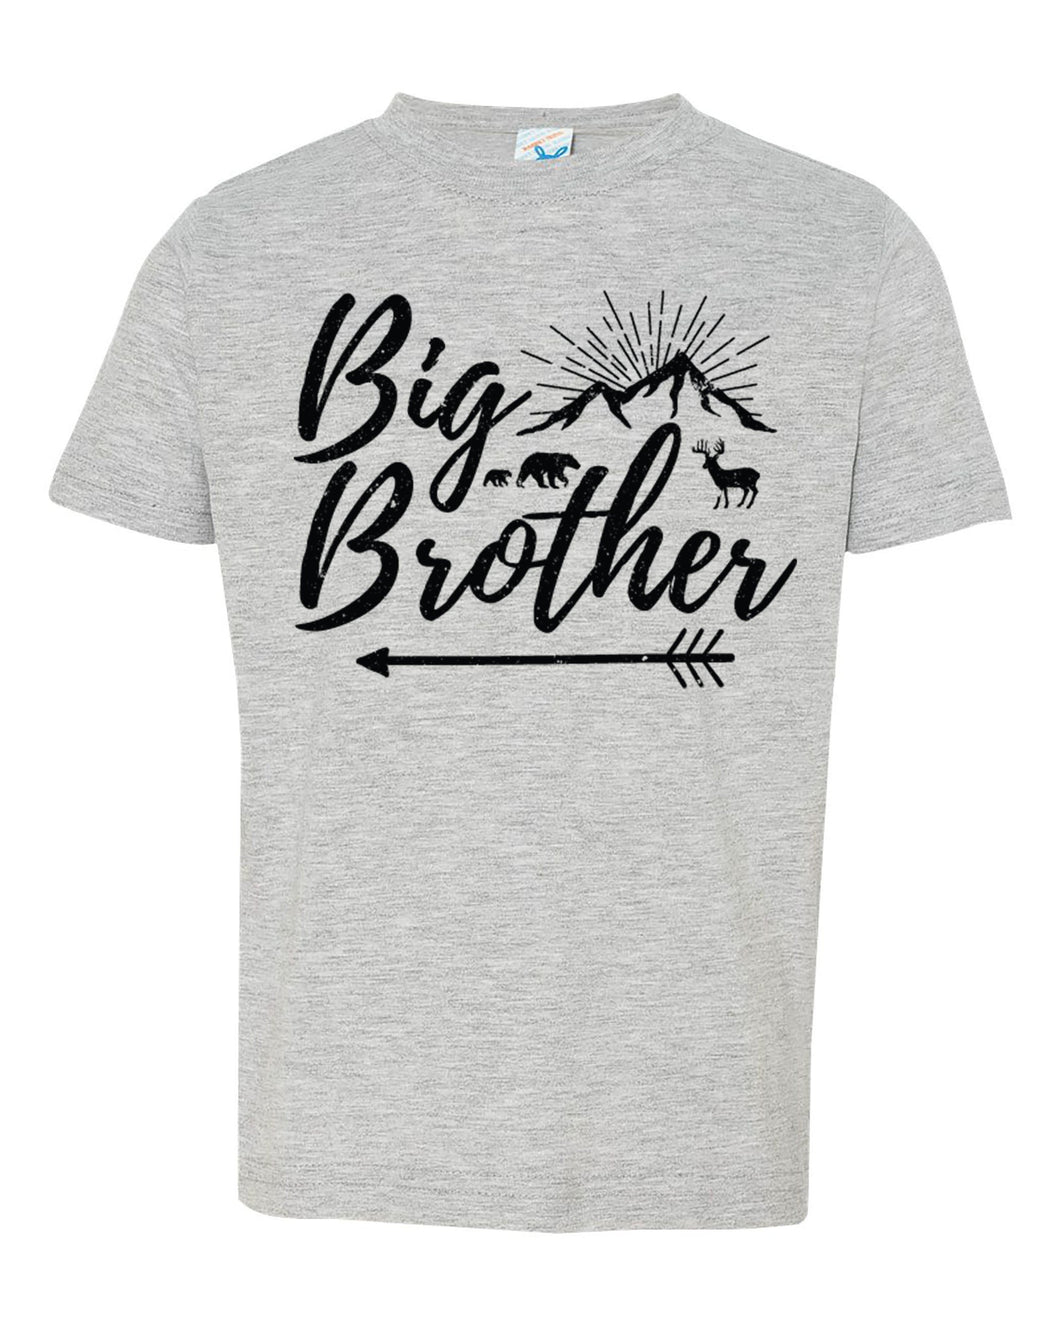 Big Brother Mountains / Youth / Toddler Crew Neck